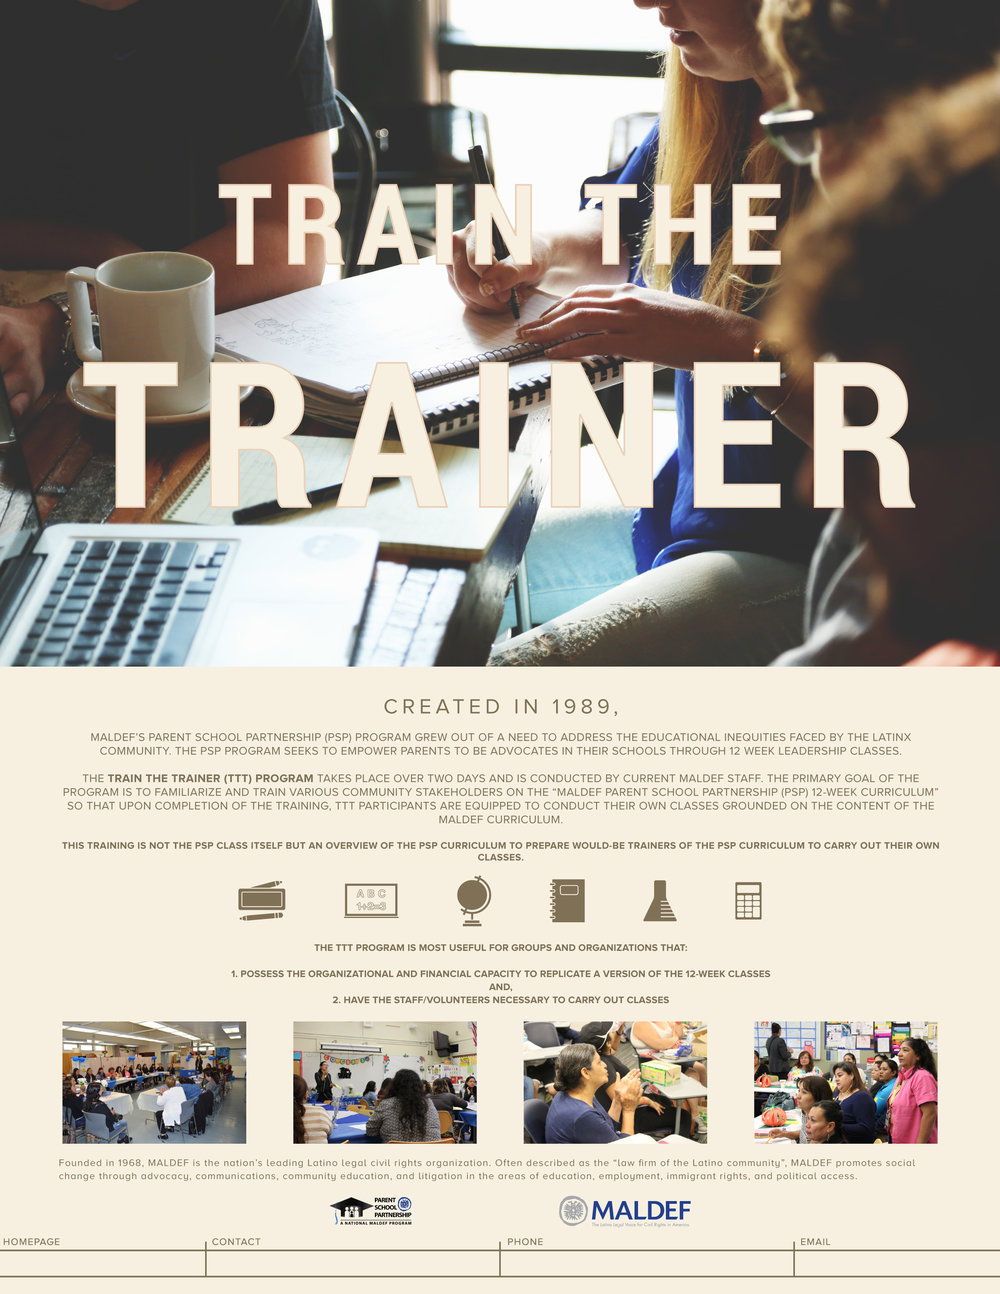 Parent School Partnership - Train the Trainer Workshop Flyer   PSP program flyer template for Train the Trainer workshop.  2017